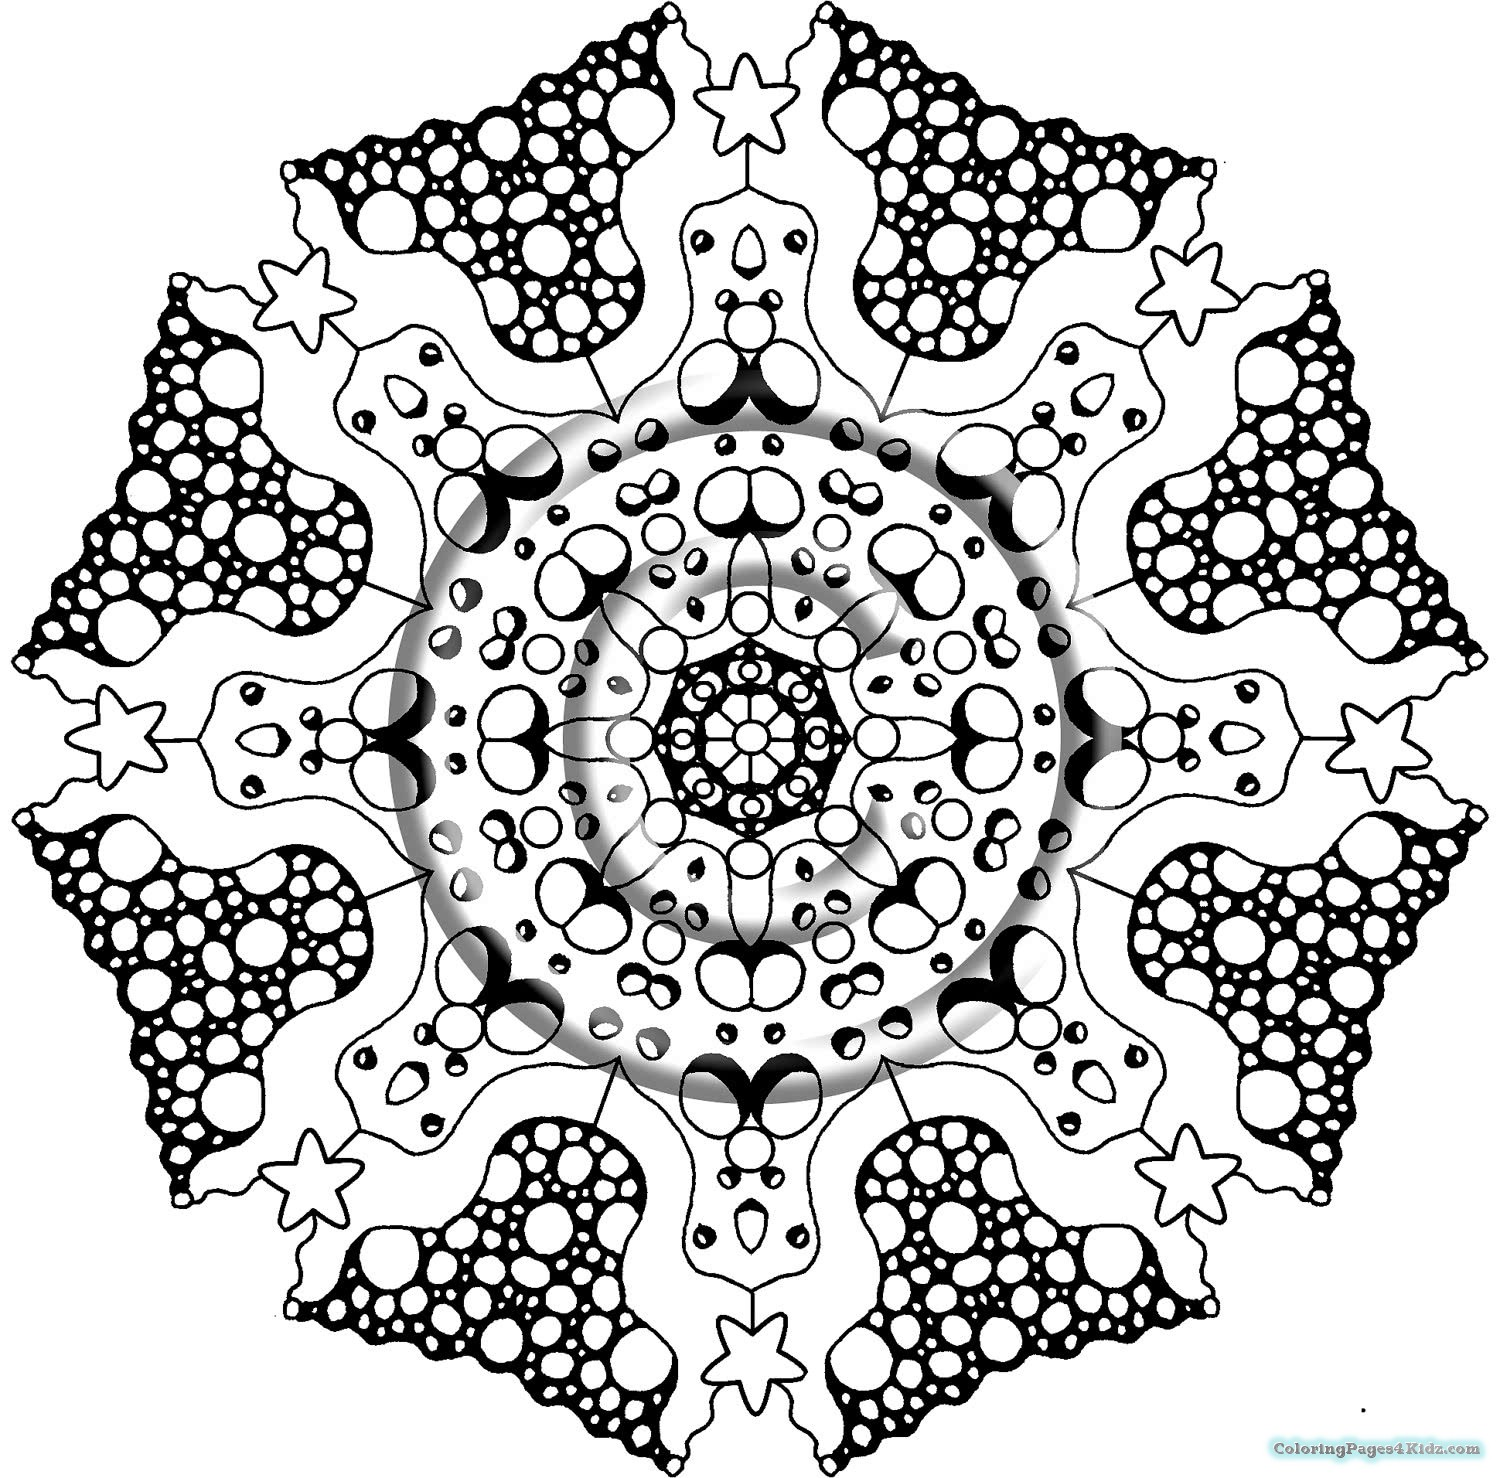 zentangle coloring pages free printable zentangle coloring pages printable free coloring sheets coloring zentangle free pages printable